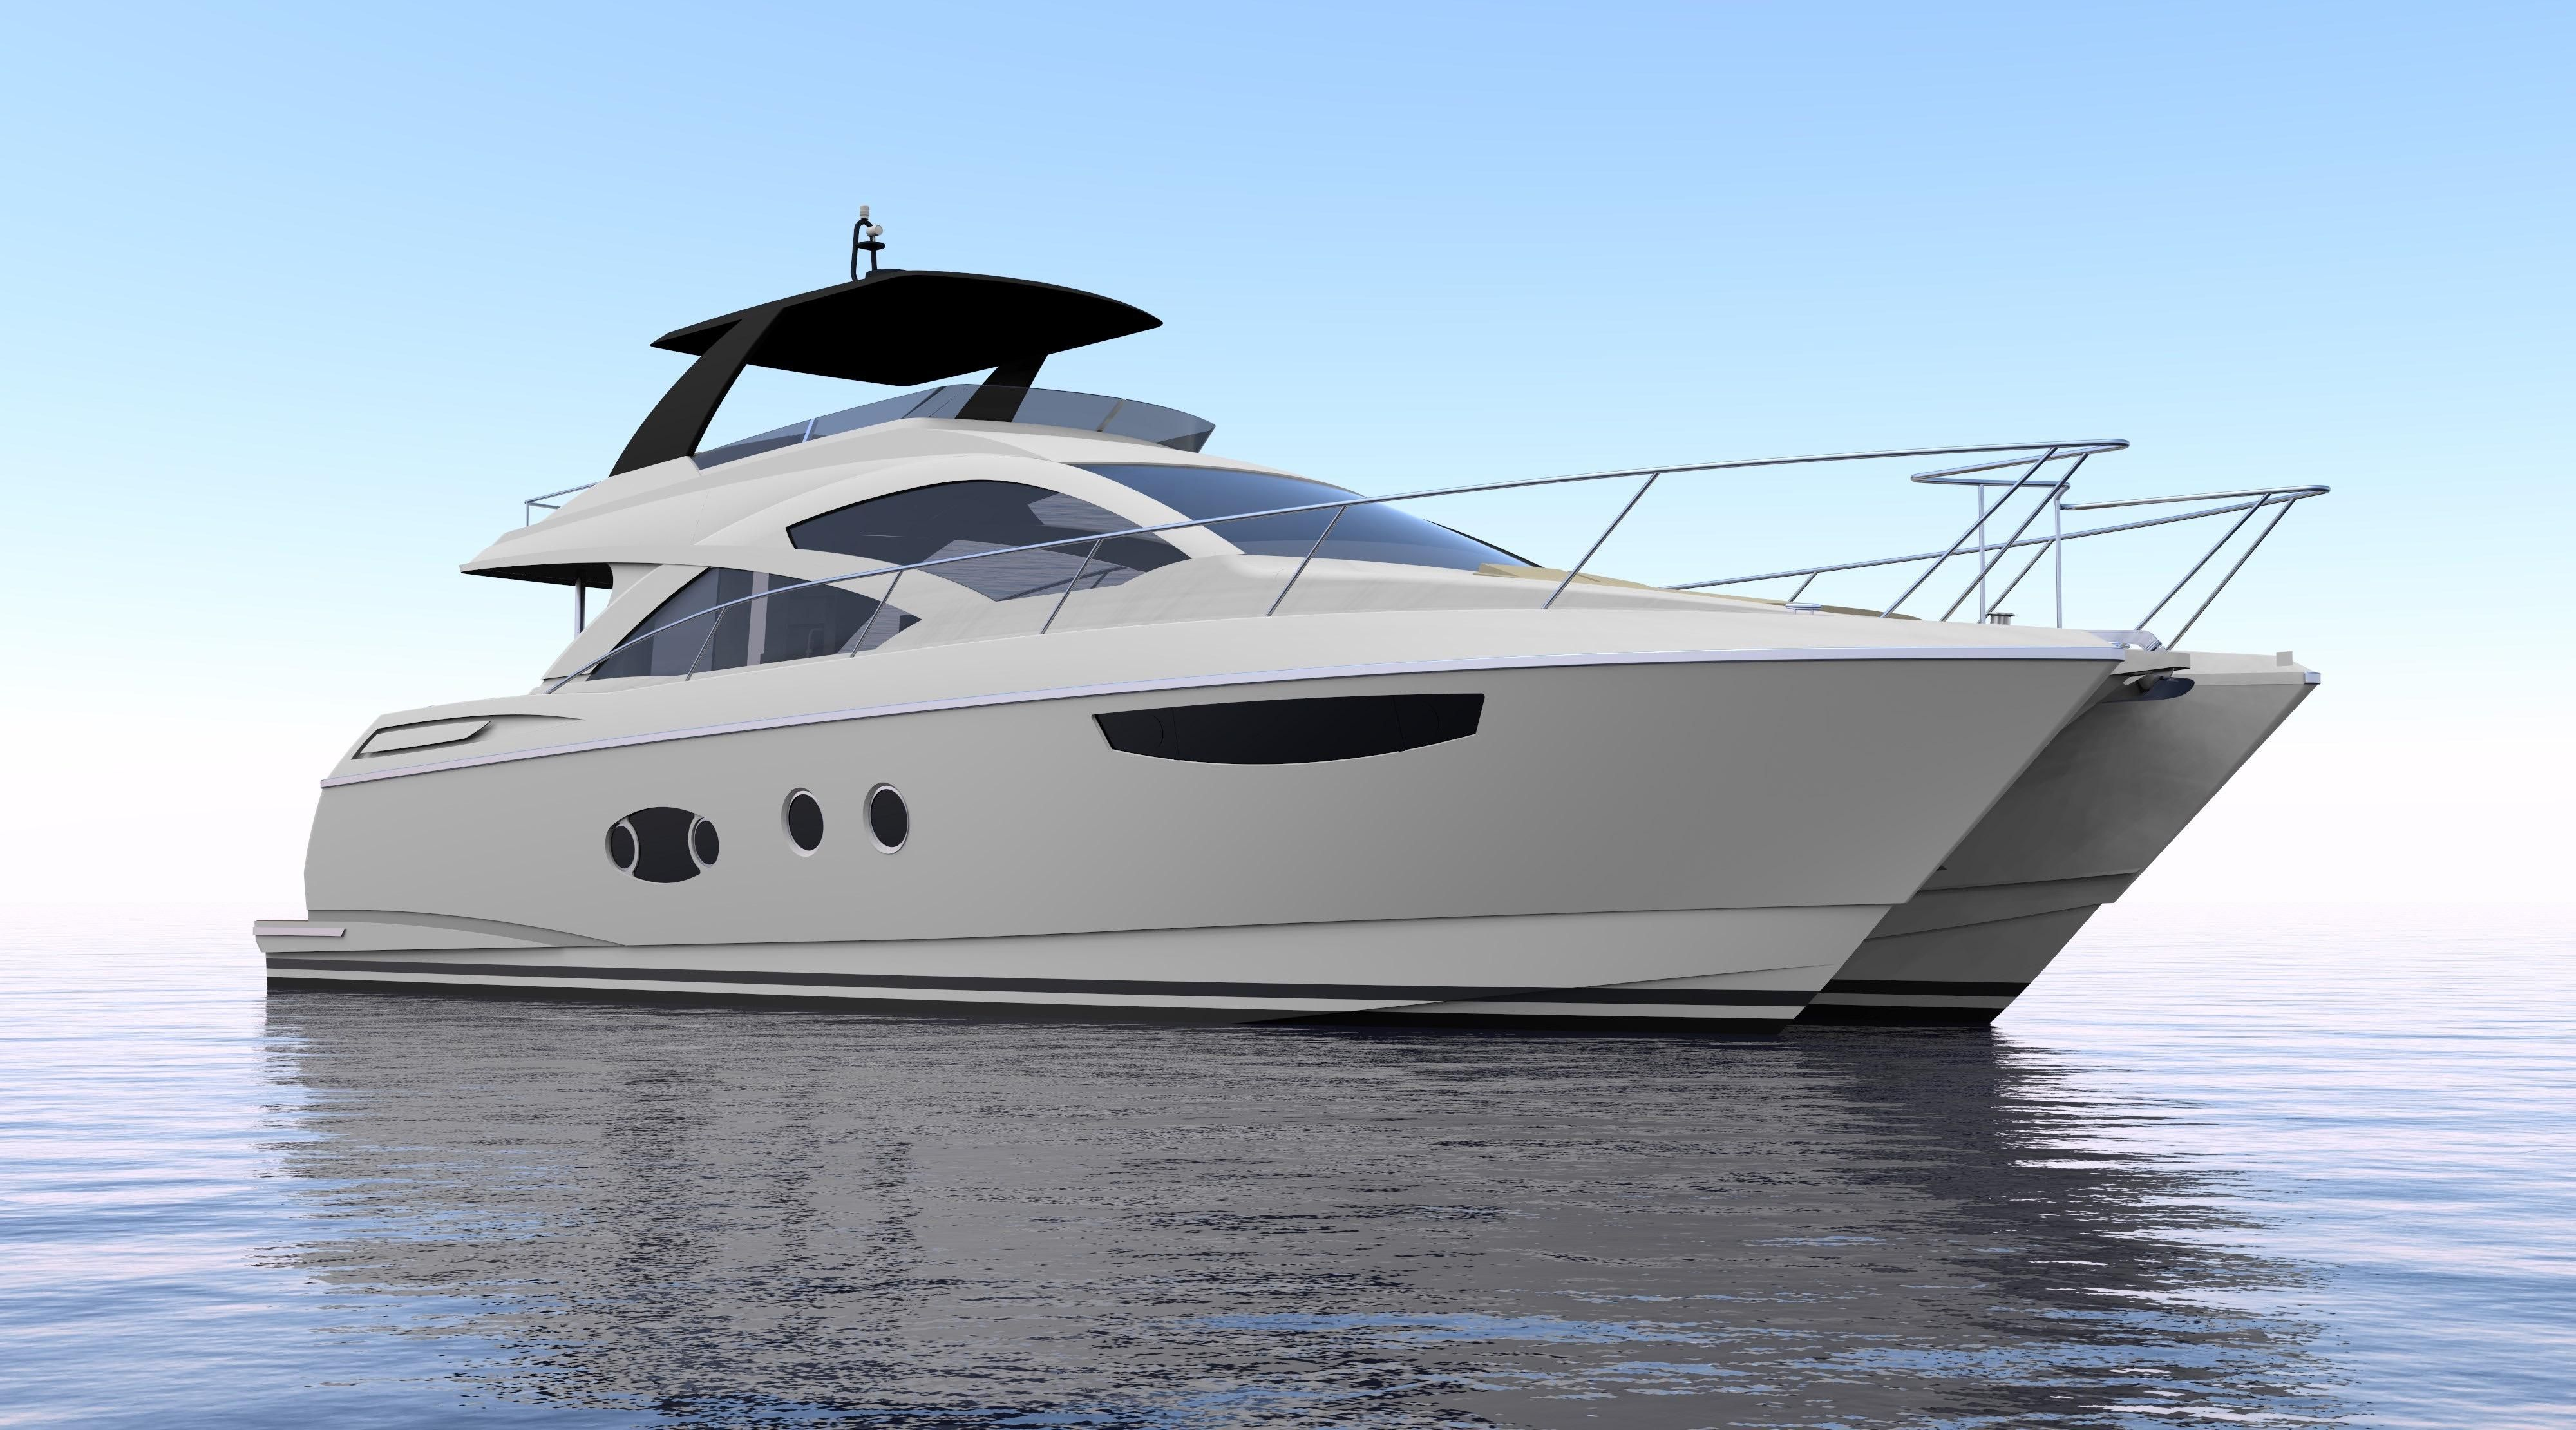 2018 Mares 65 Motor Yacht Power Boat For Sale Www